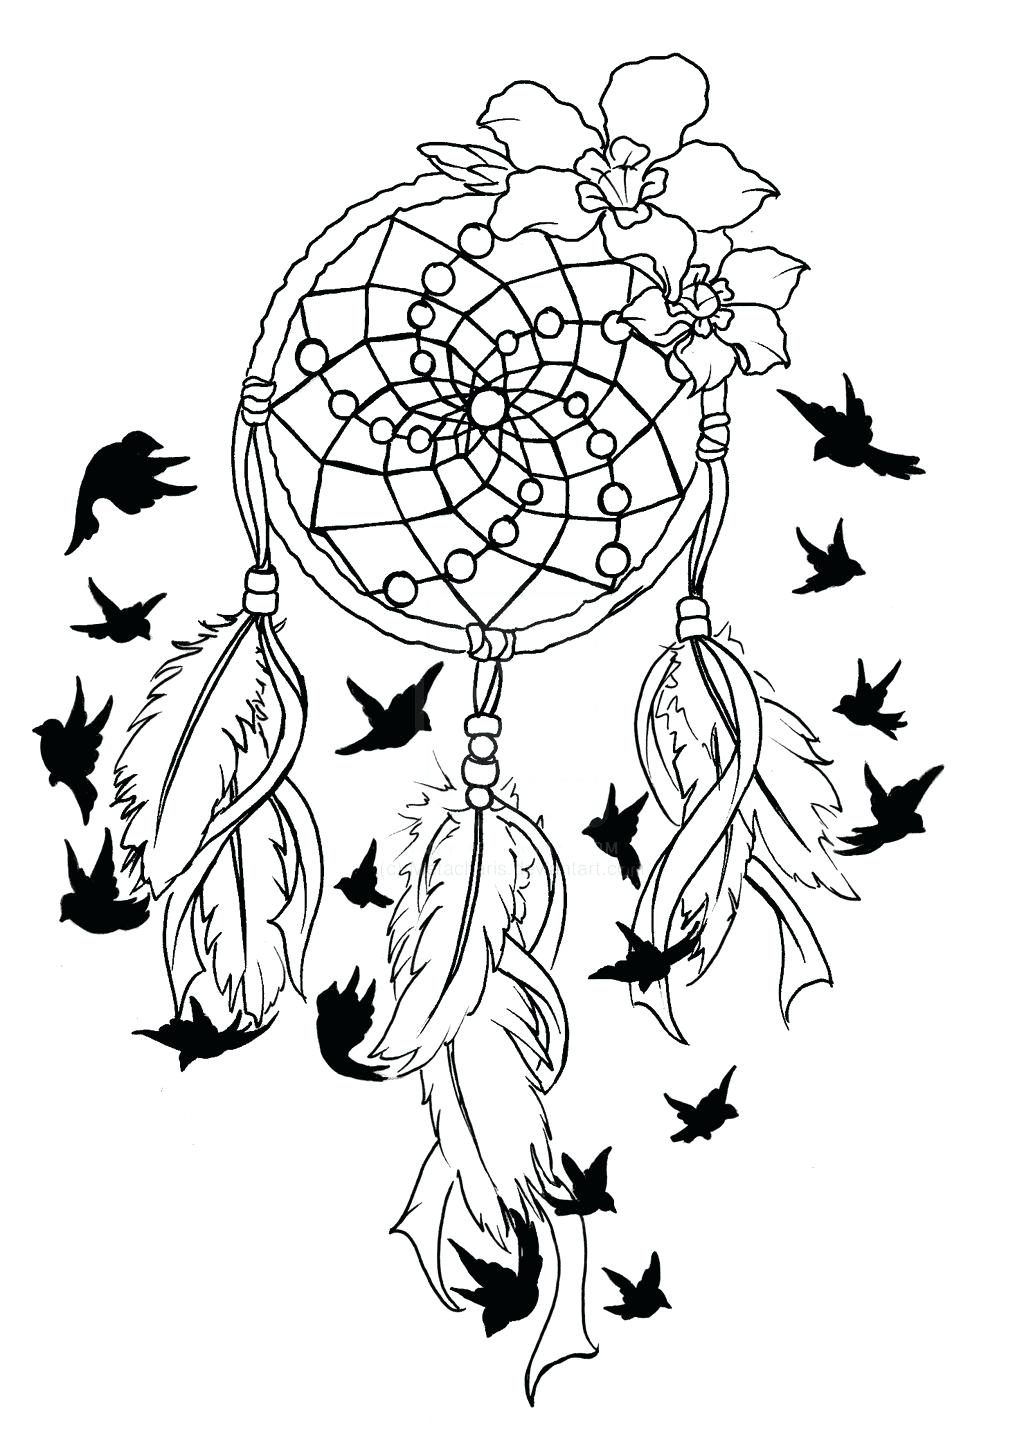 Coloring Page Breast Cancer Coloring Pages Ribbon with Bird Tattoo Printable Of Cutting Files for You Symbols for the Love Of Glass to Print